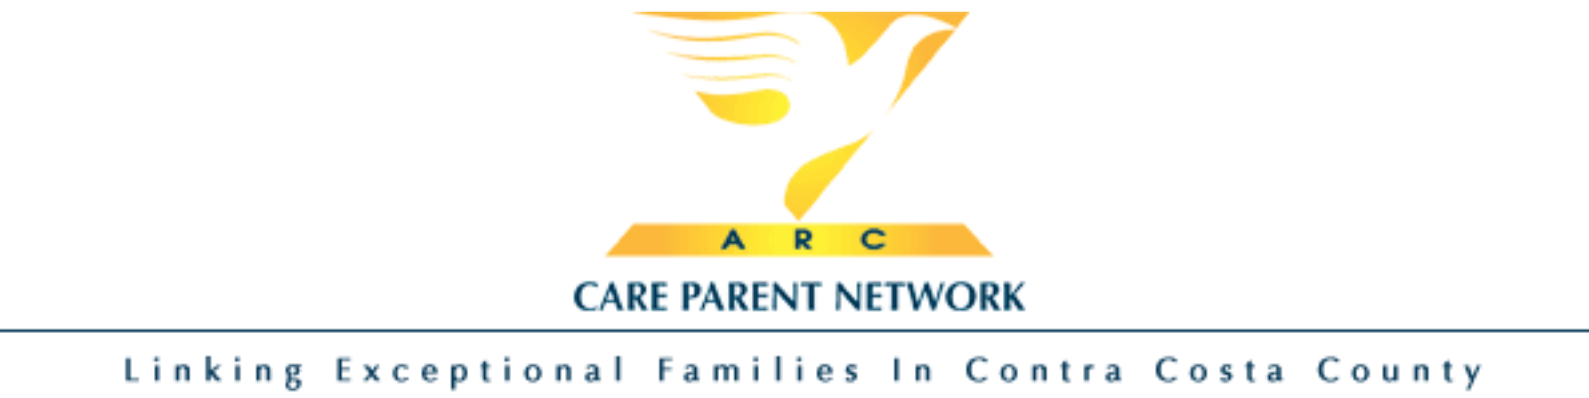 http://www.contracostaarc.org/html/care.html